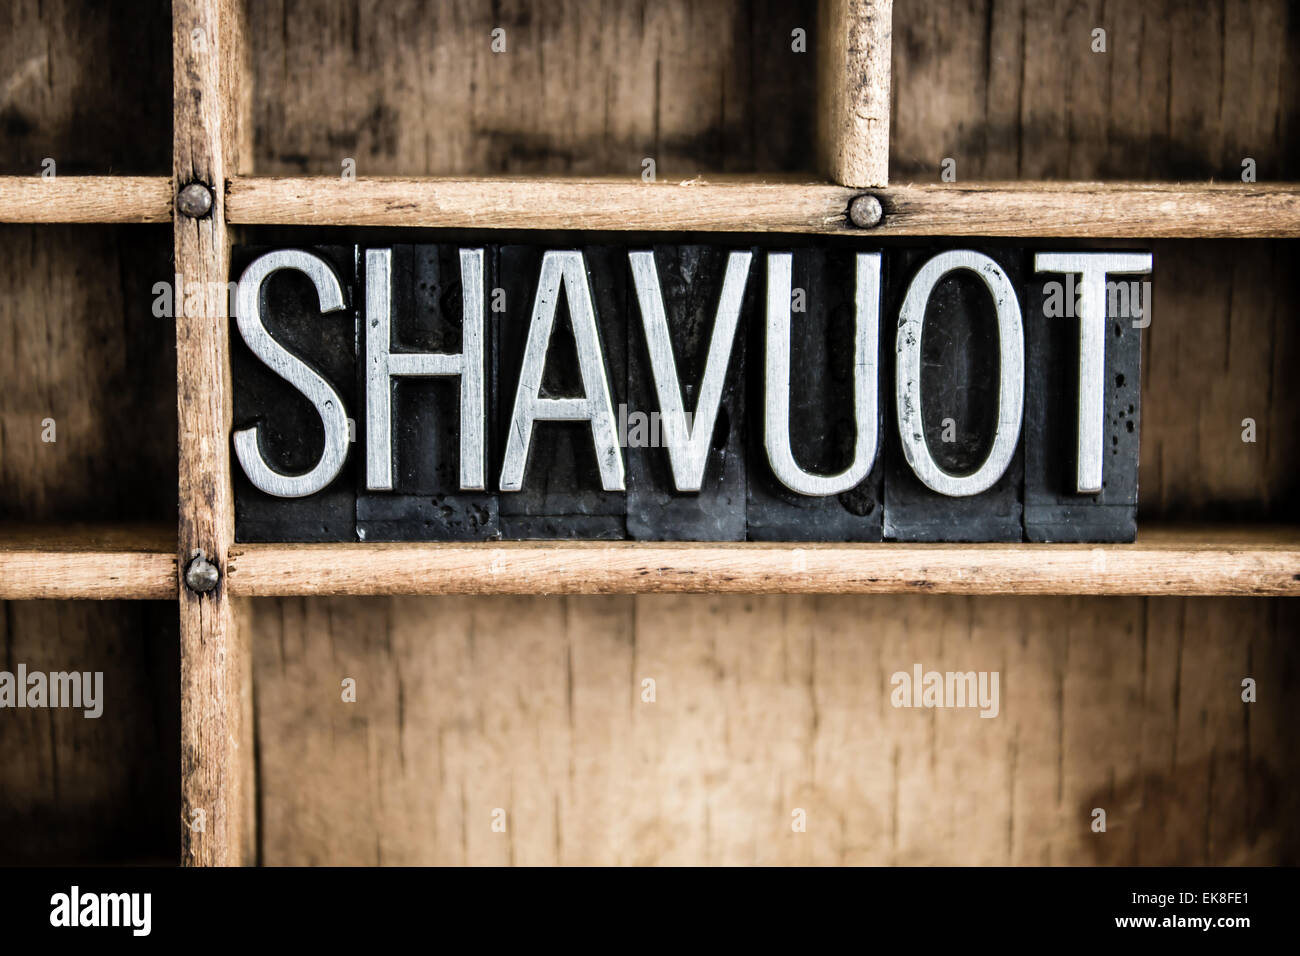 The word 'SHAVUOT' written in vintage metal letterpress type in a wooden drawer with dividers. - Stock Image